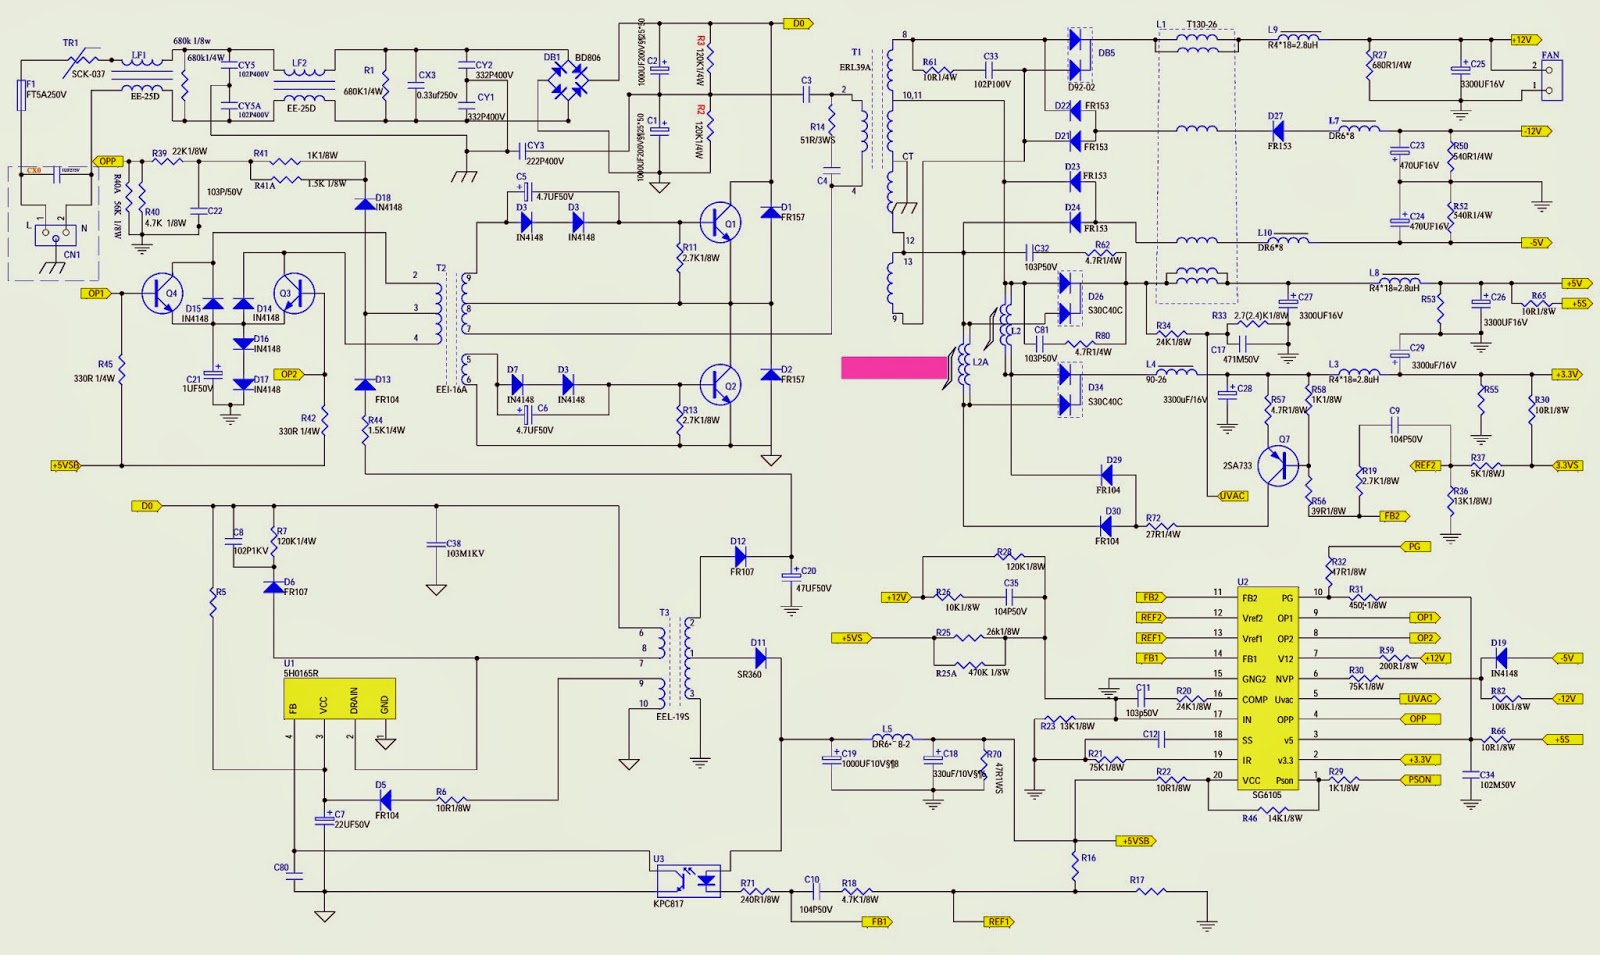 Unique Schematic Online Image - Electrical Circuit Diagram Ideas ...